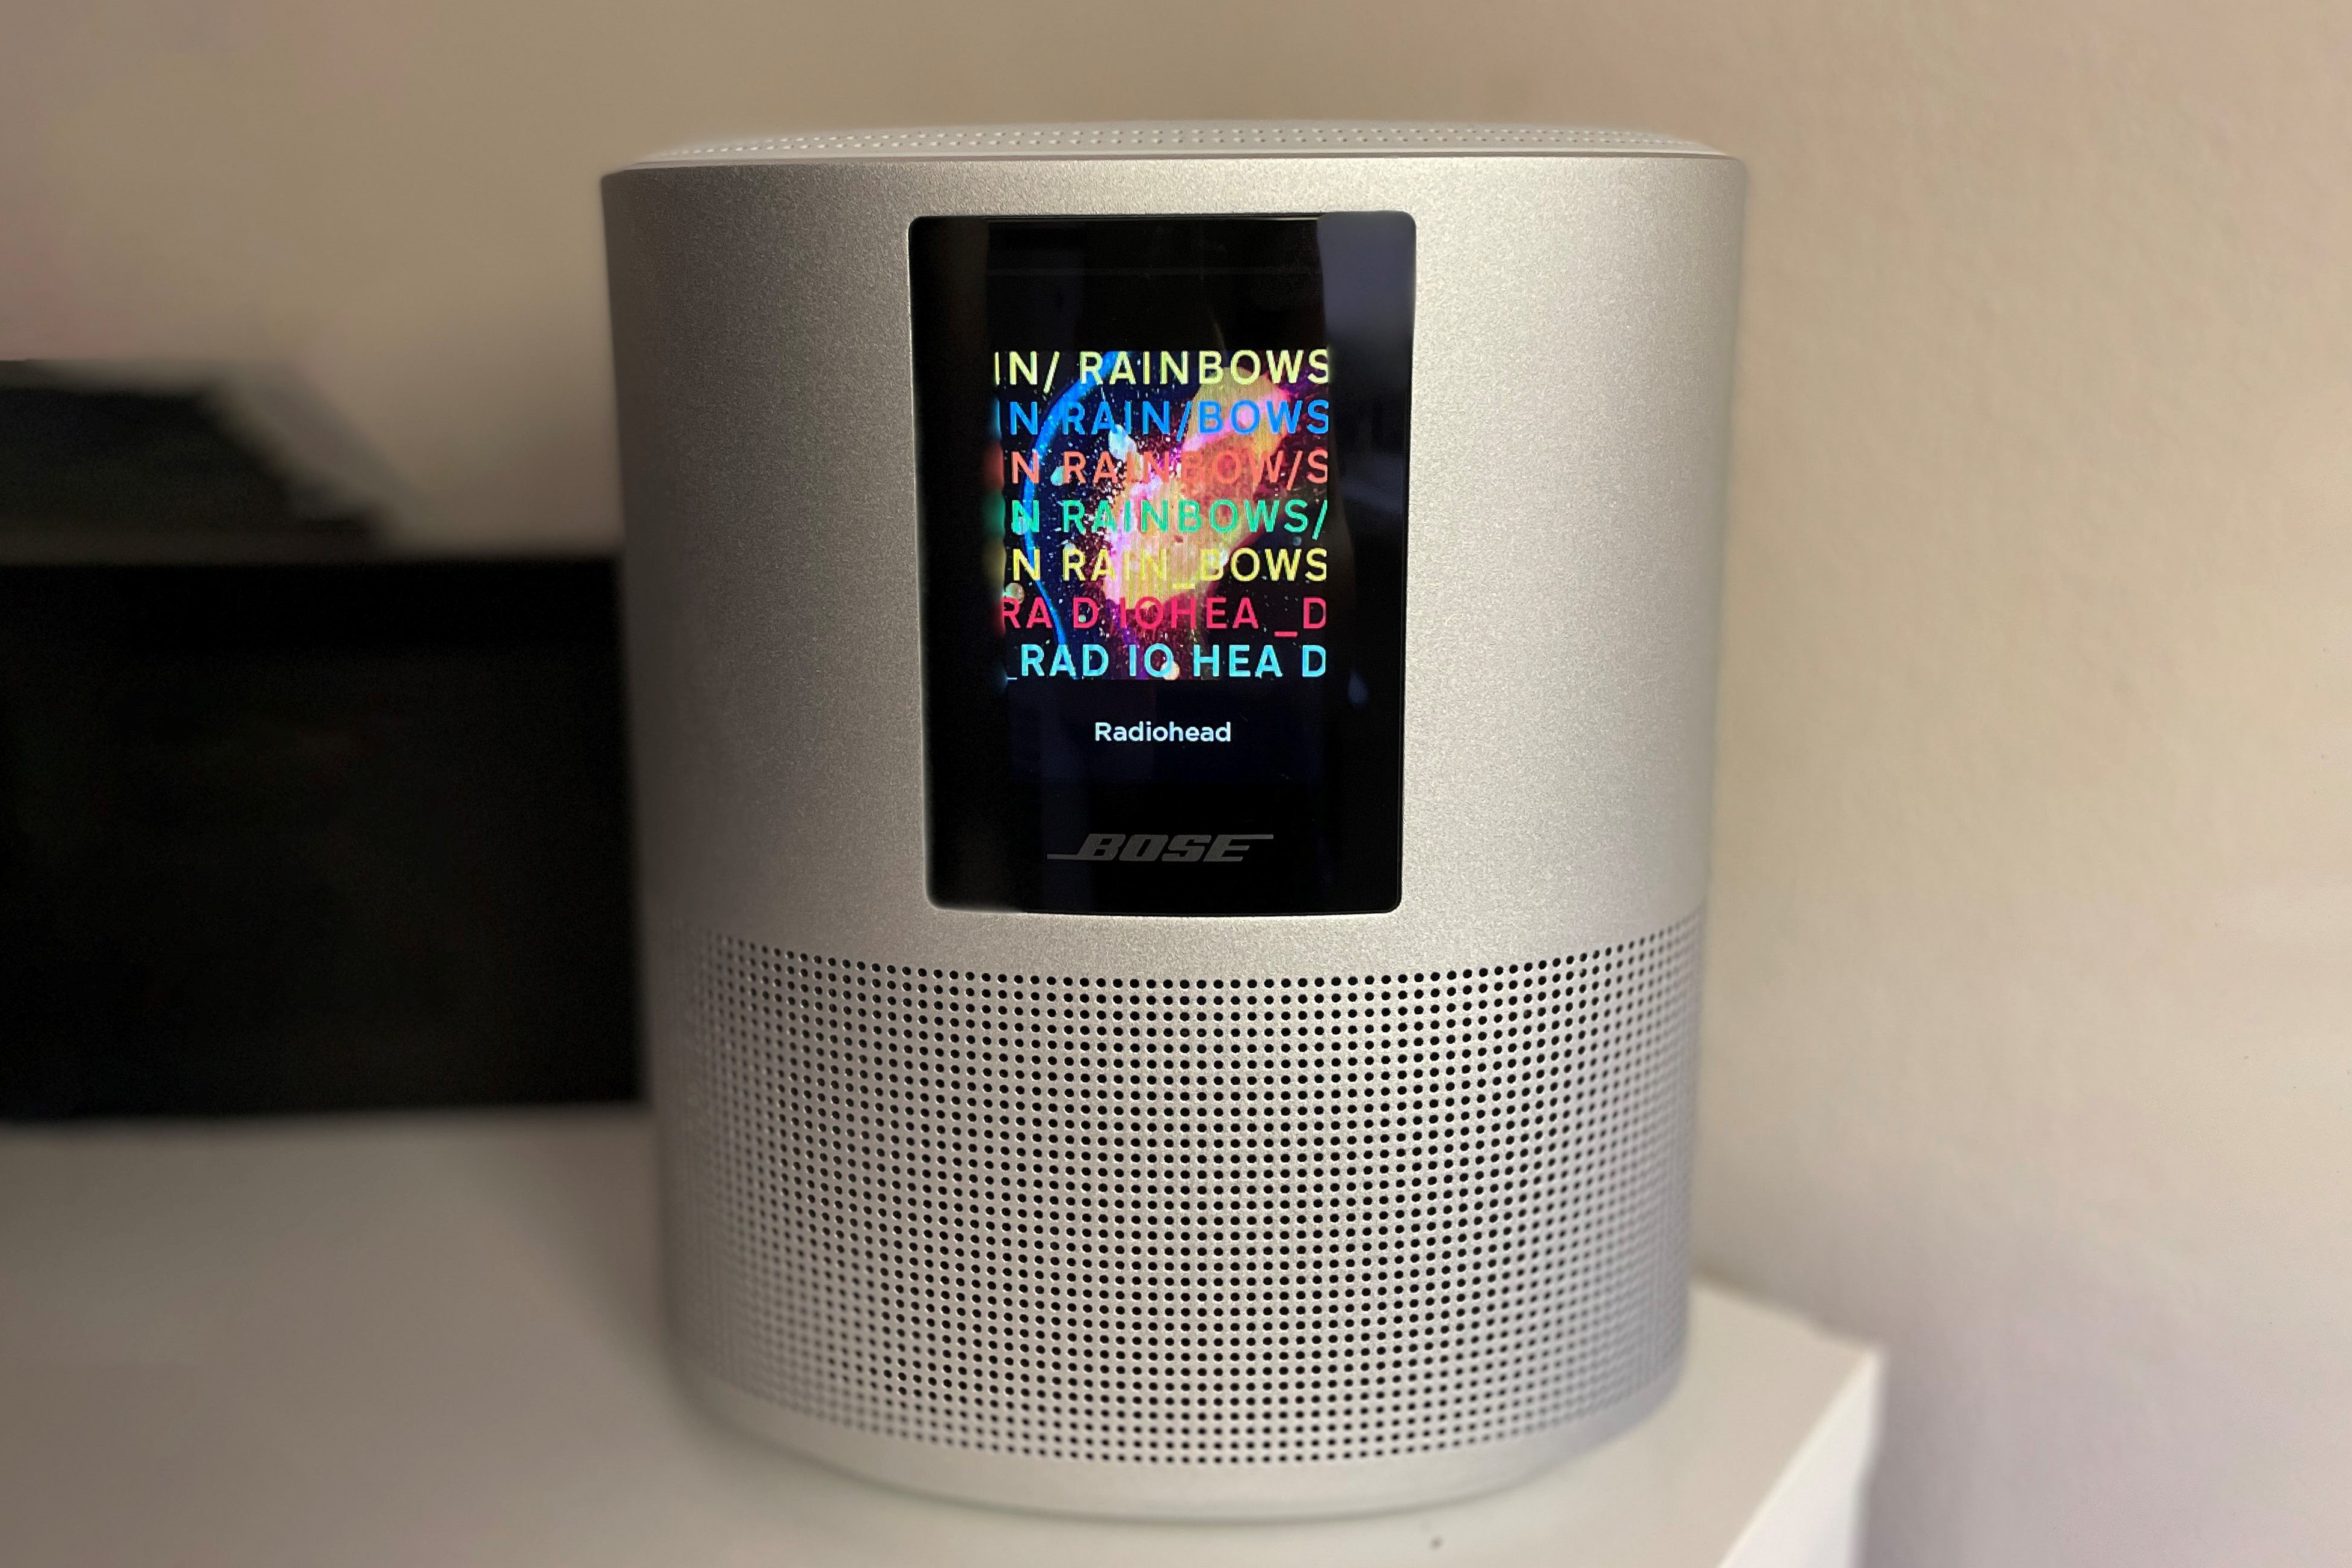 Bose Home 500 smart speaker against a white wall